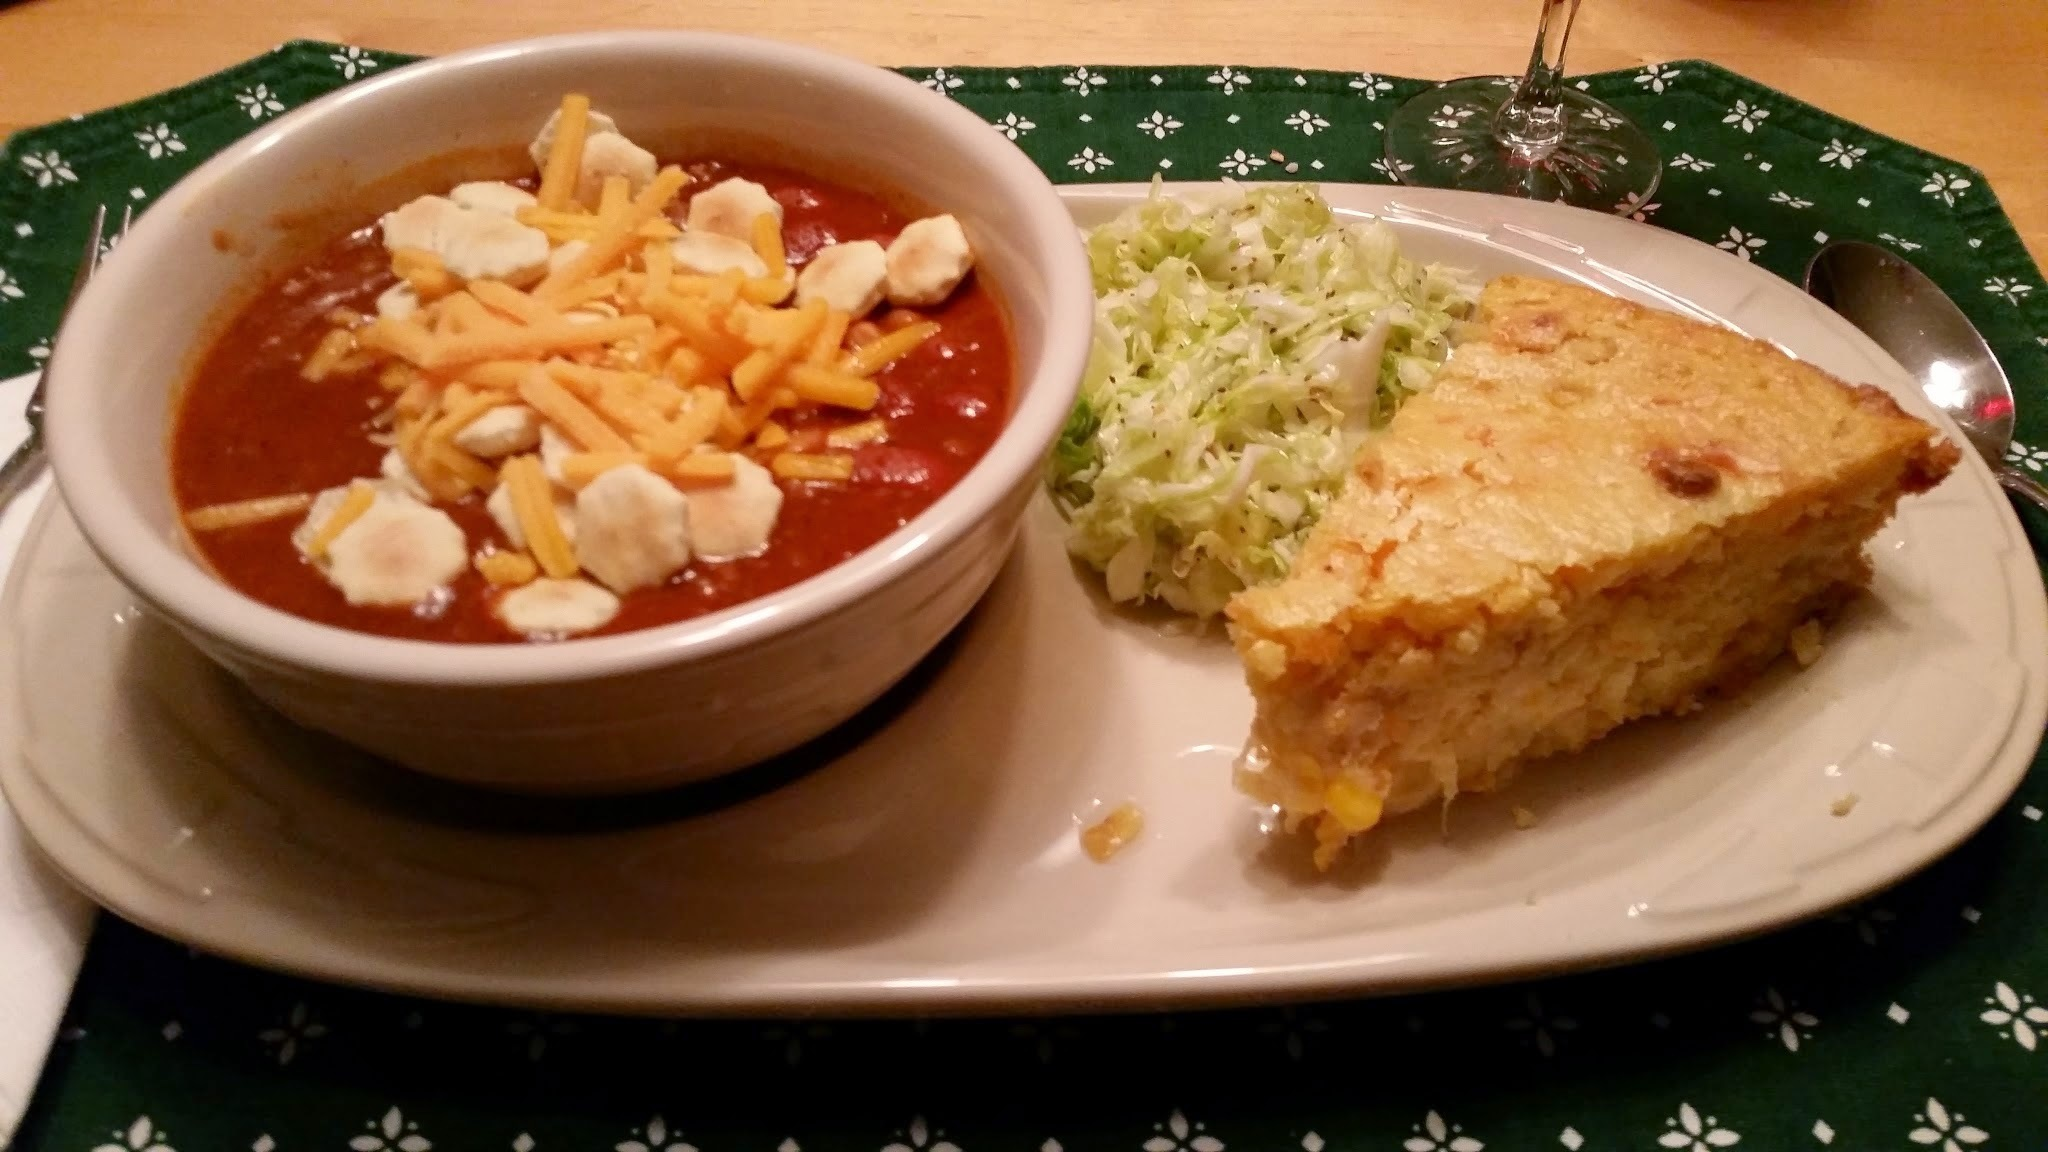 Moist Corn Bread, Carolina Slaw and Chili ~ A perfect Autumn combo!